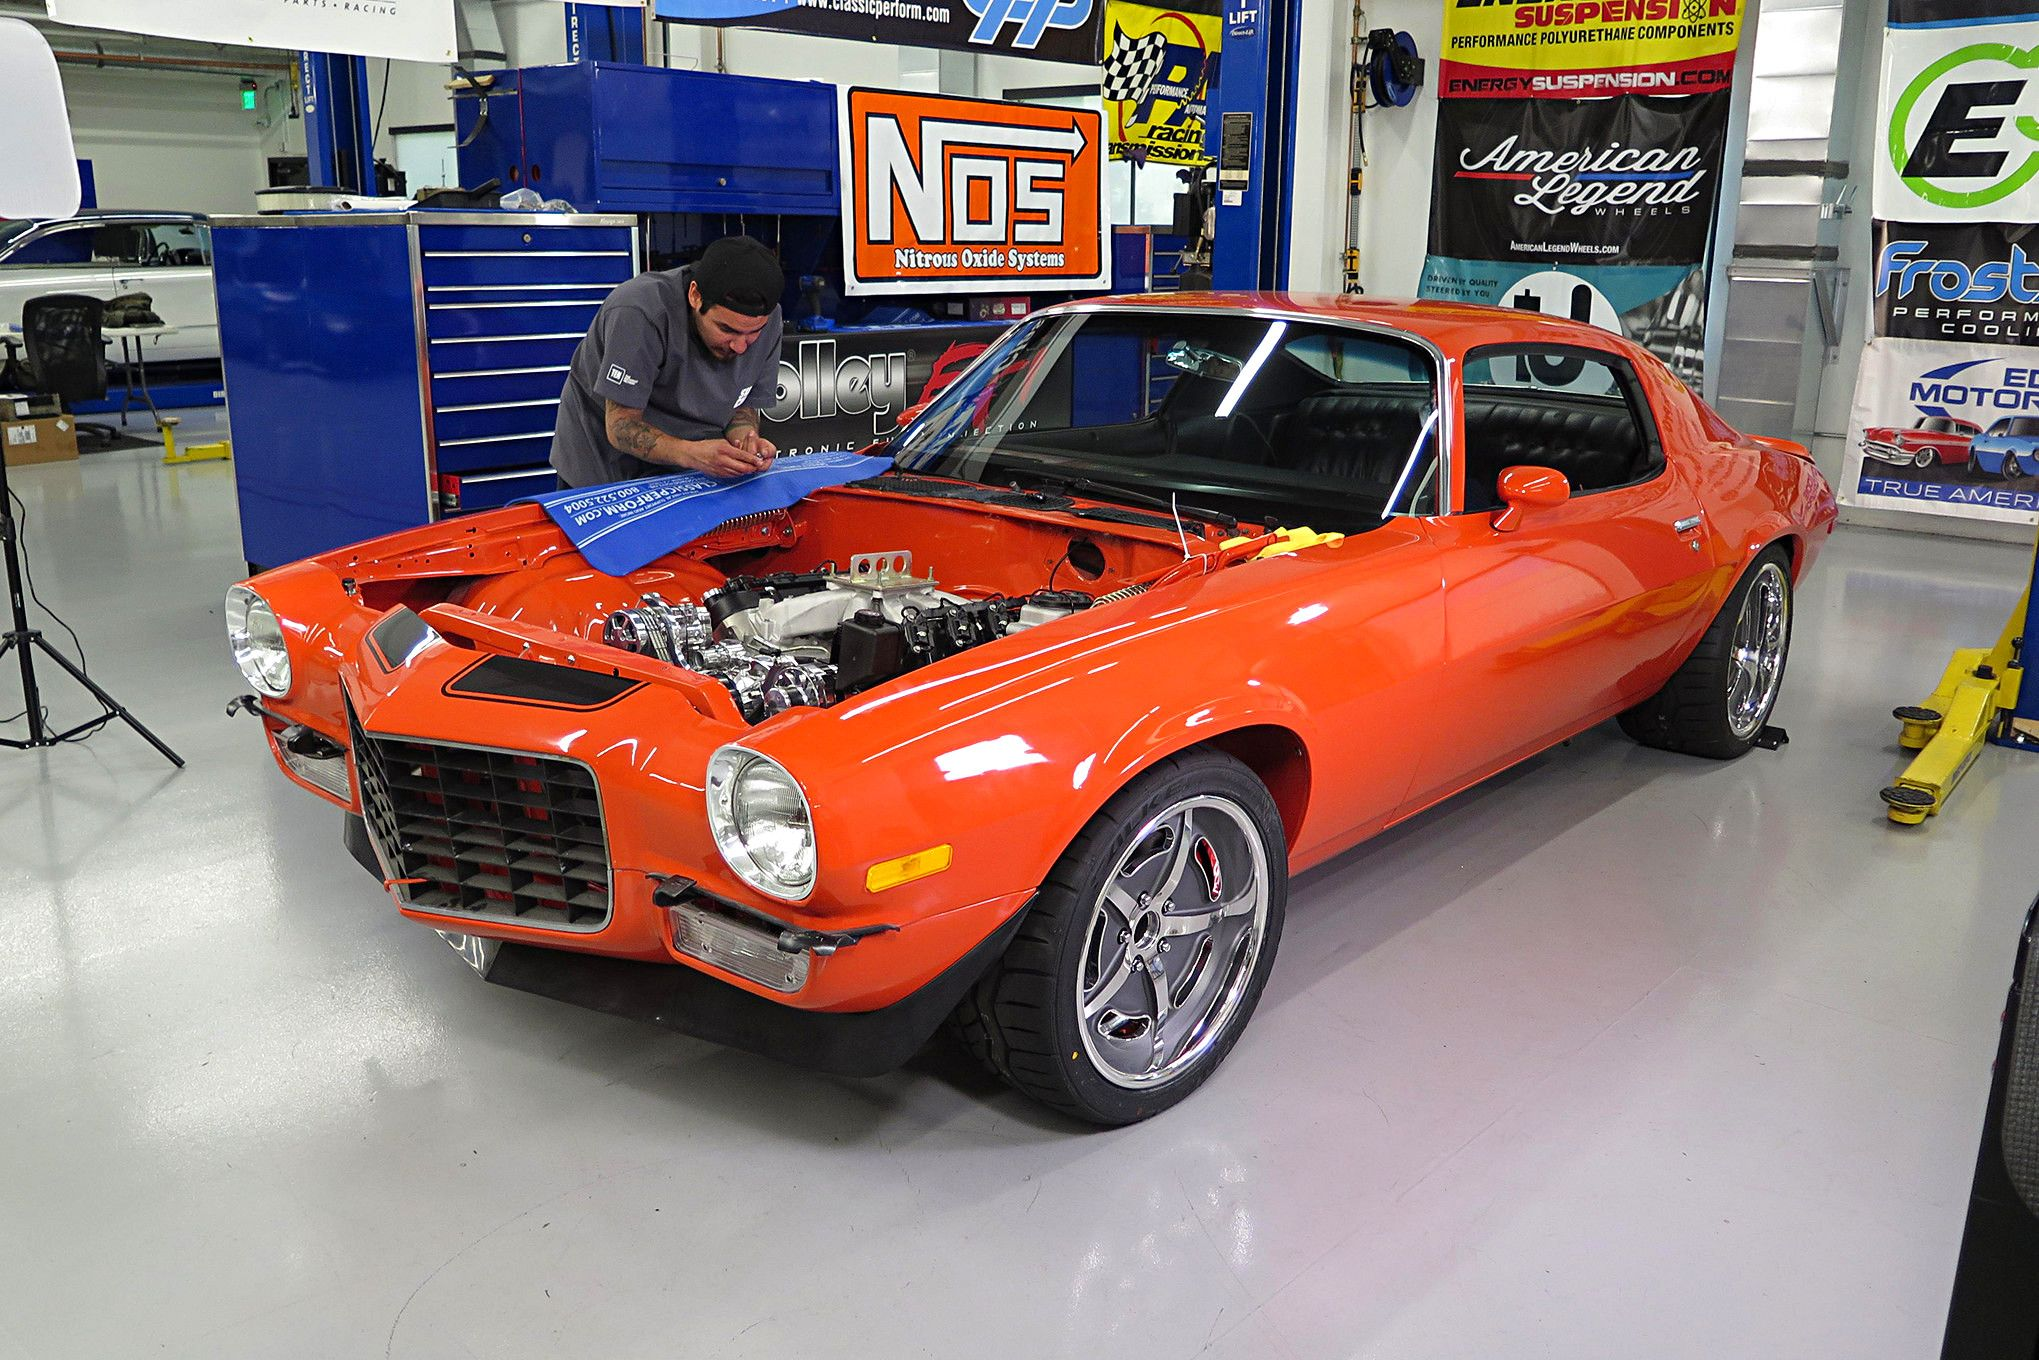 WEEK TO WICKED - 1972 CHEVY CAMARO - American Legend